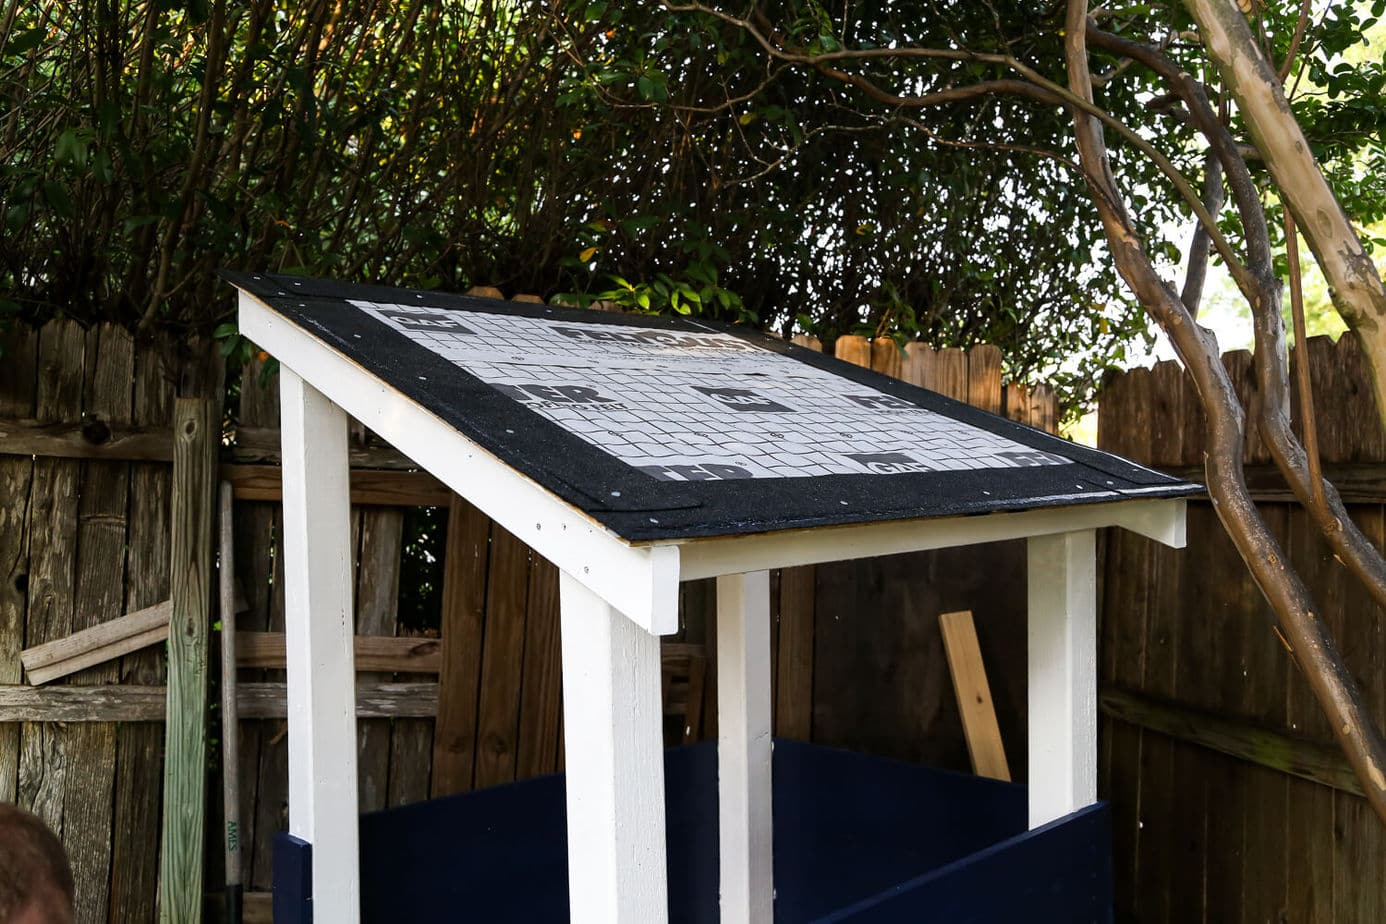 How to install a playhouse roof